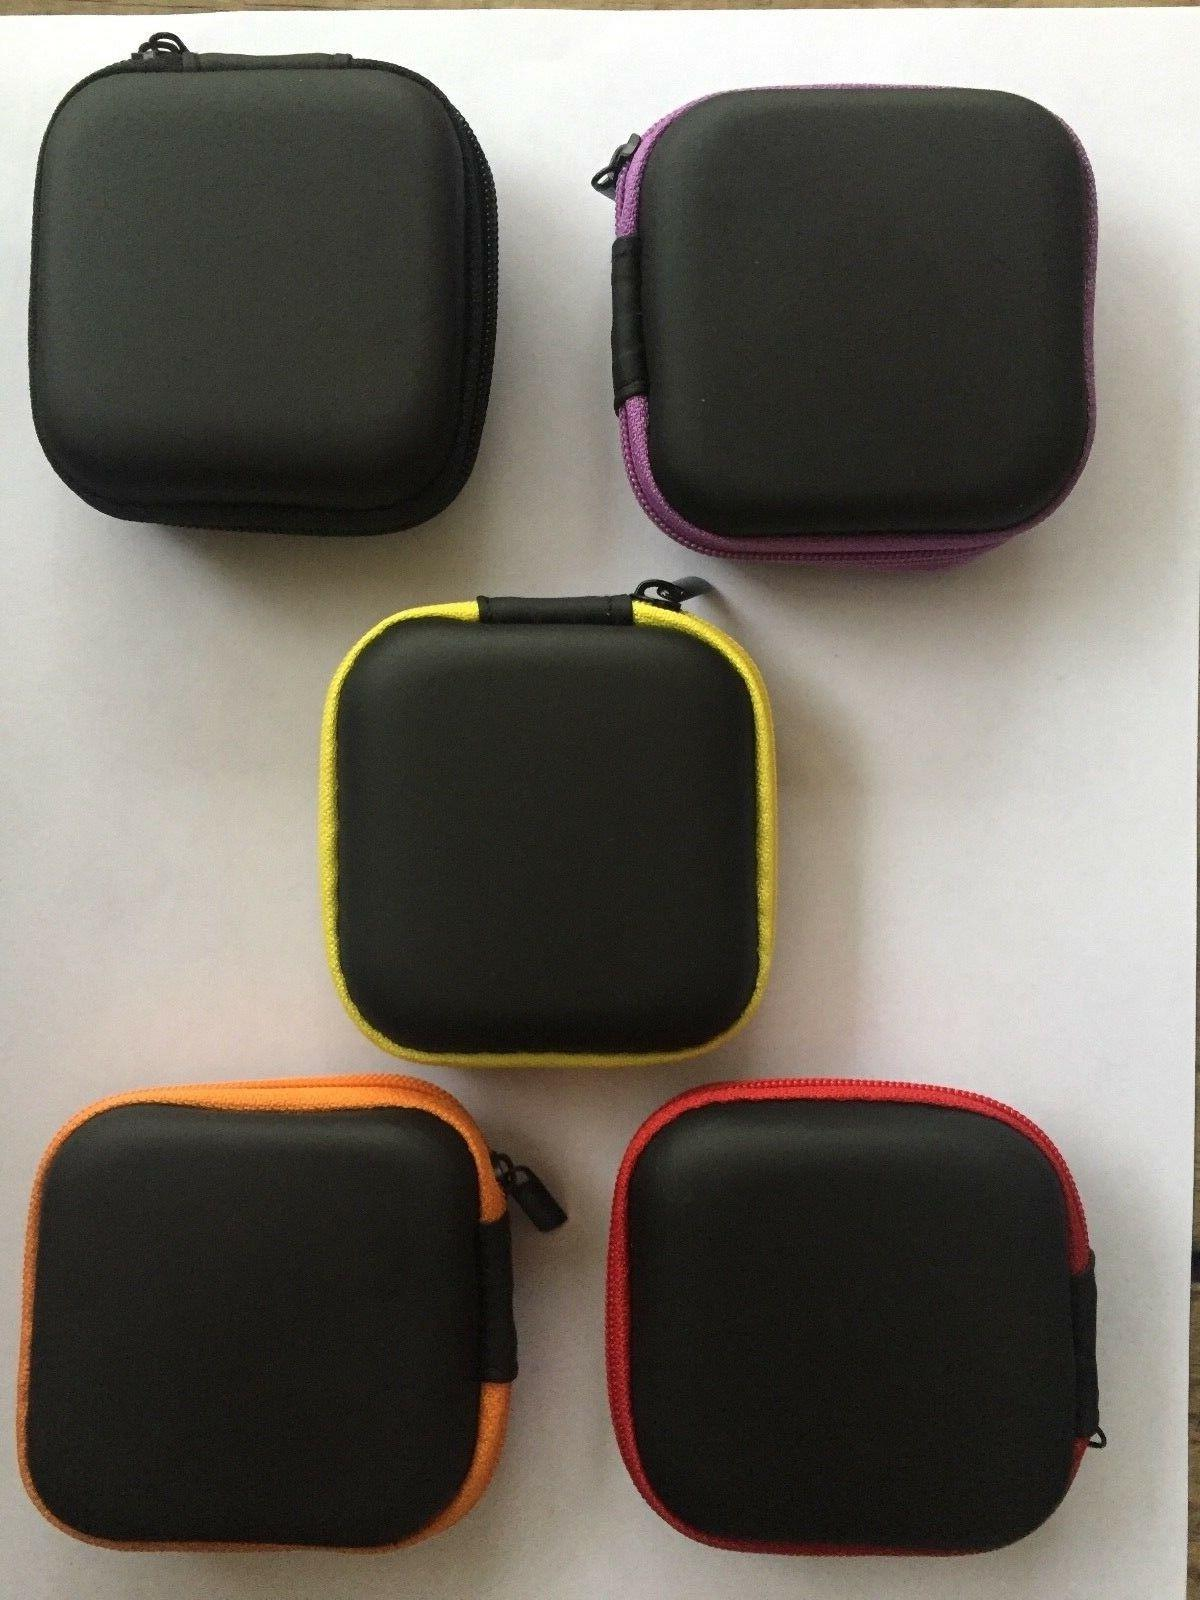 2 Large Small Earbud Carrying Bag